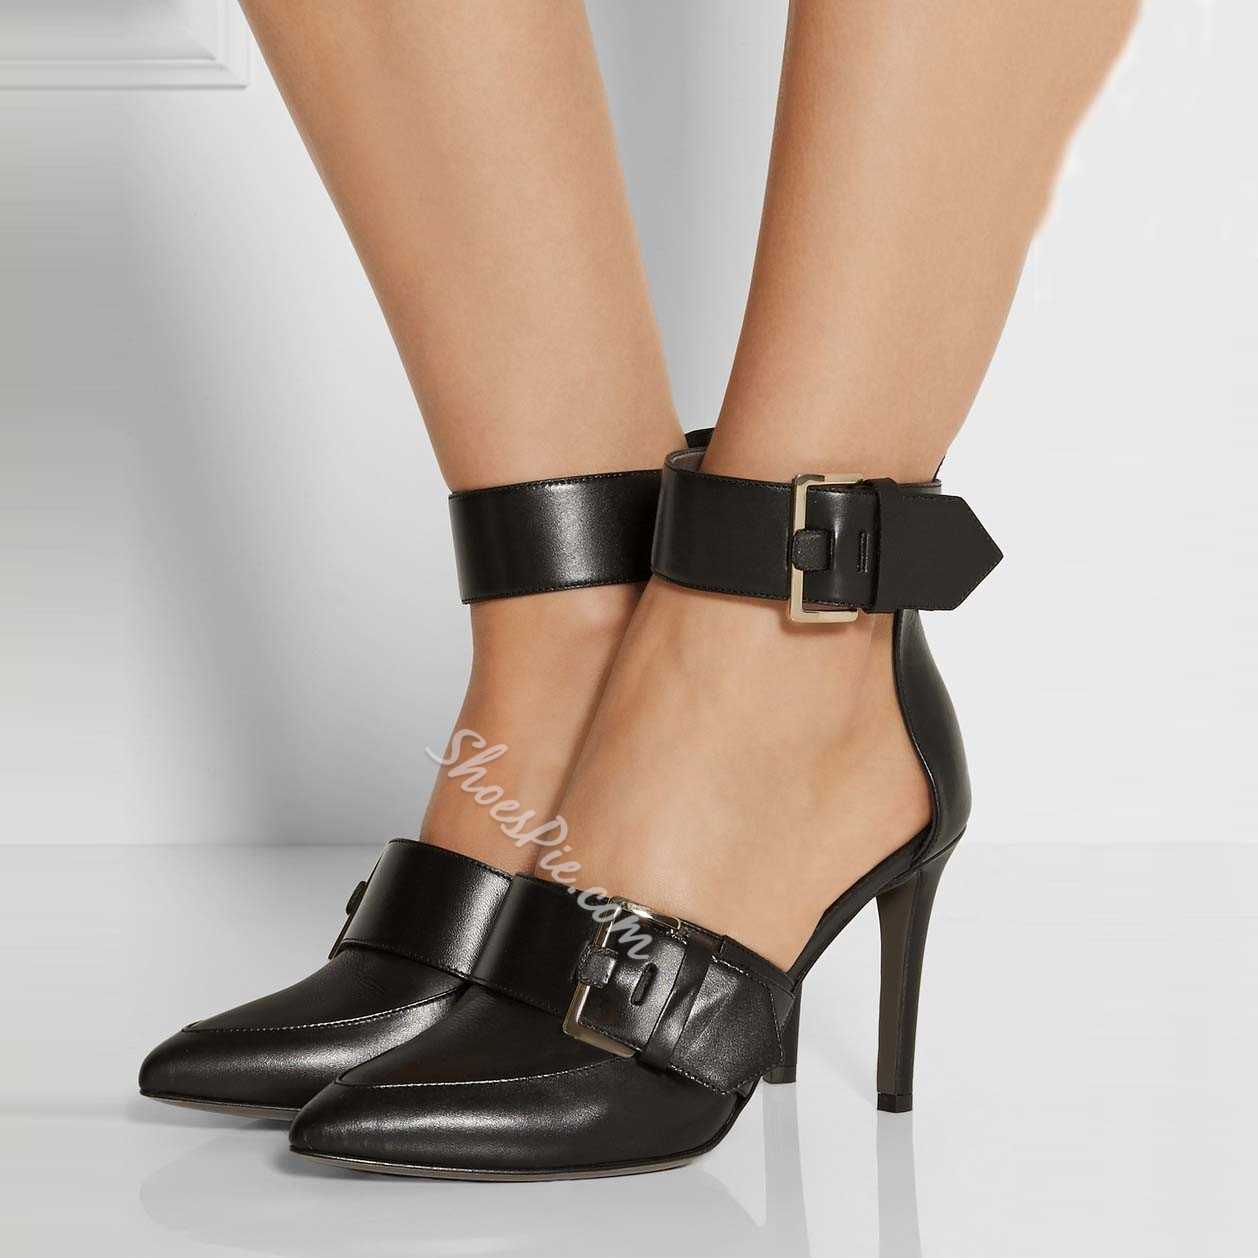 Shoespie Black Buckles Ankle Wrap Stiletto Heels Shoespie